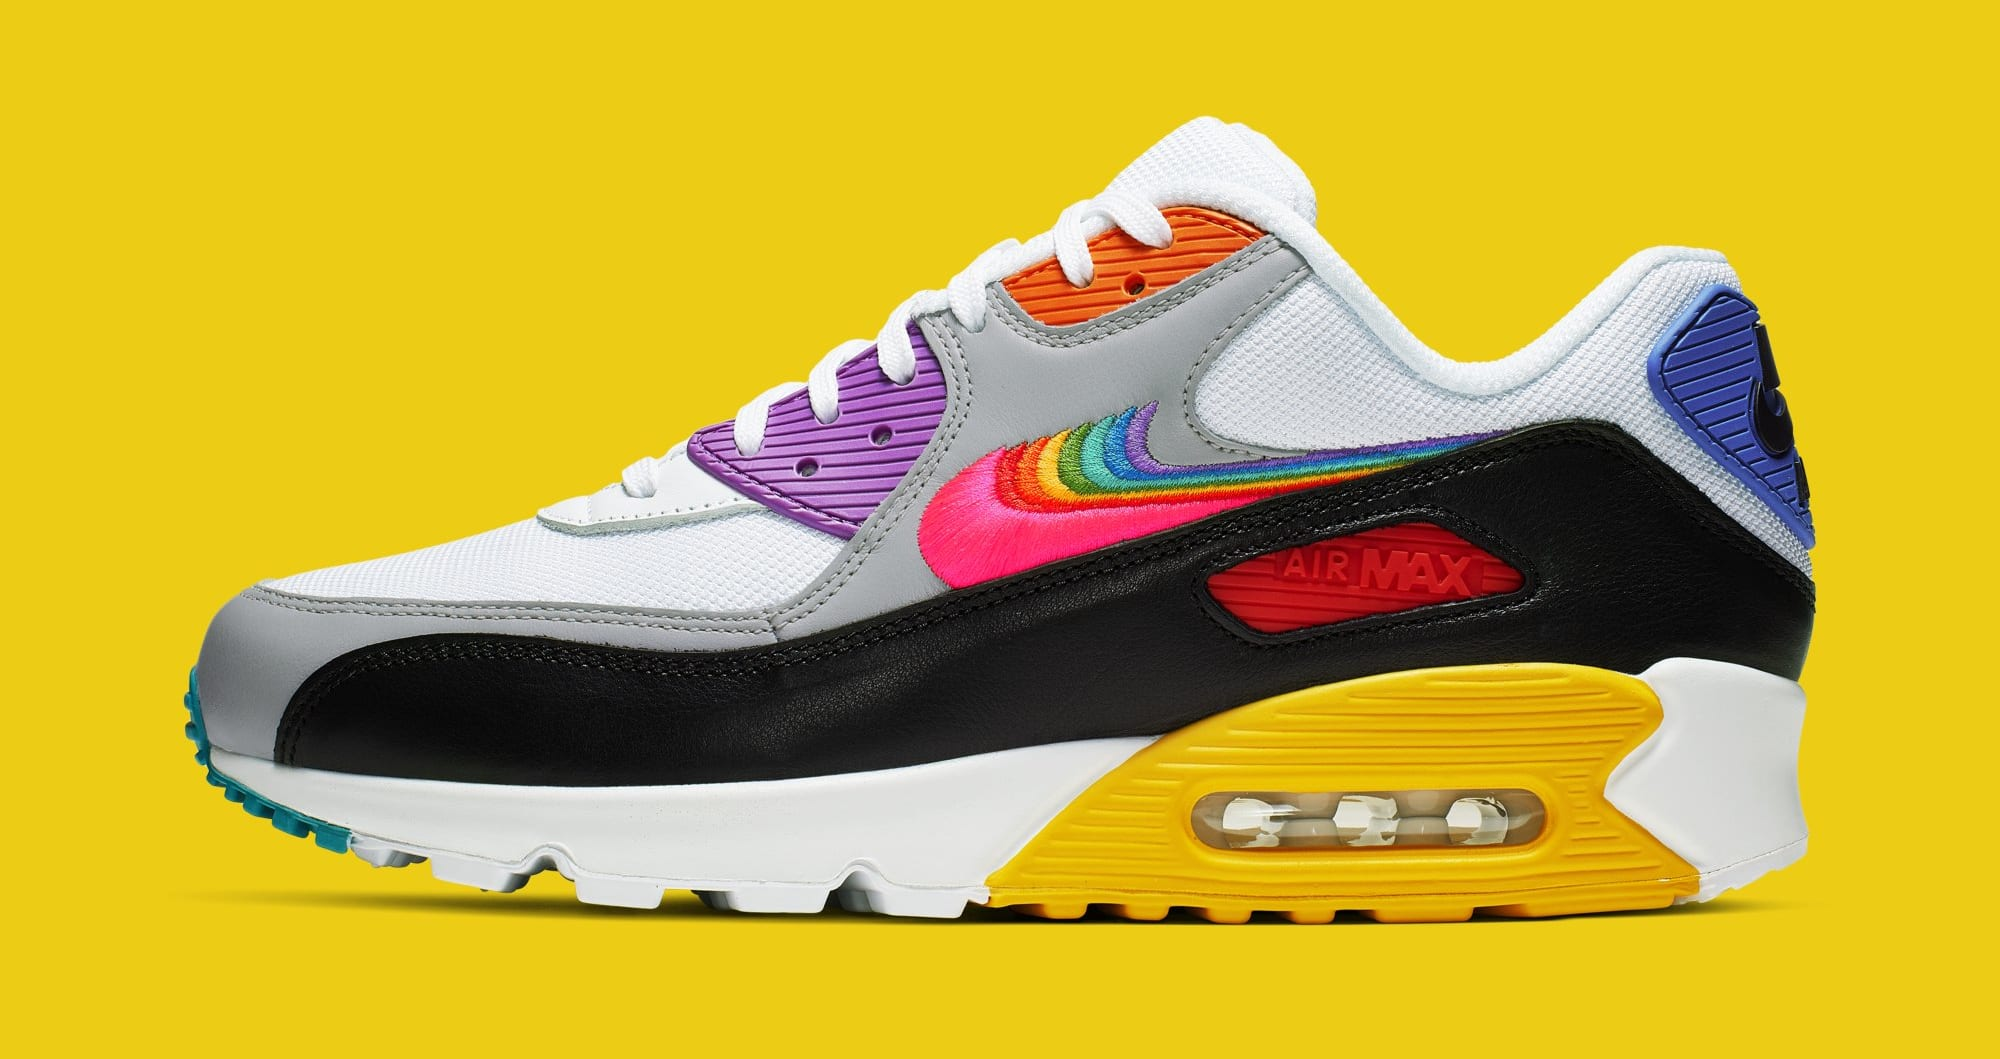 Nike Air Max 90 'Be True' CJ5482-100 (Lateral)